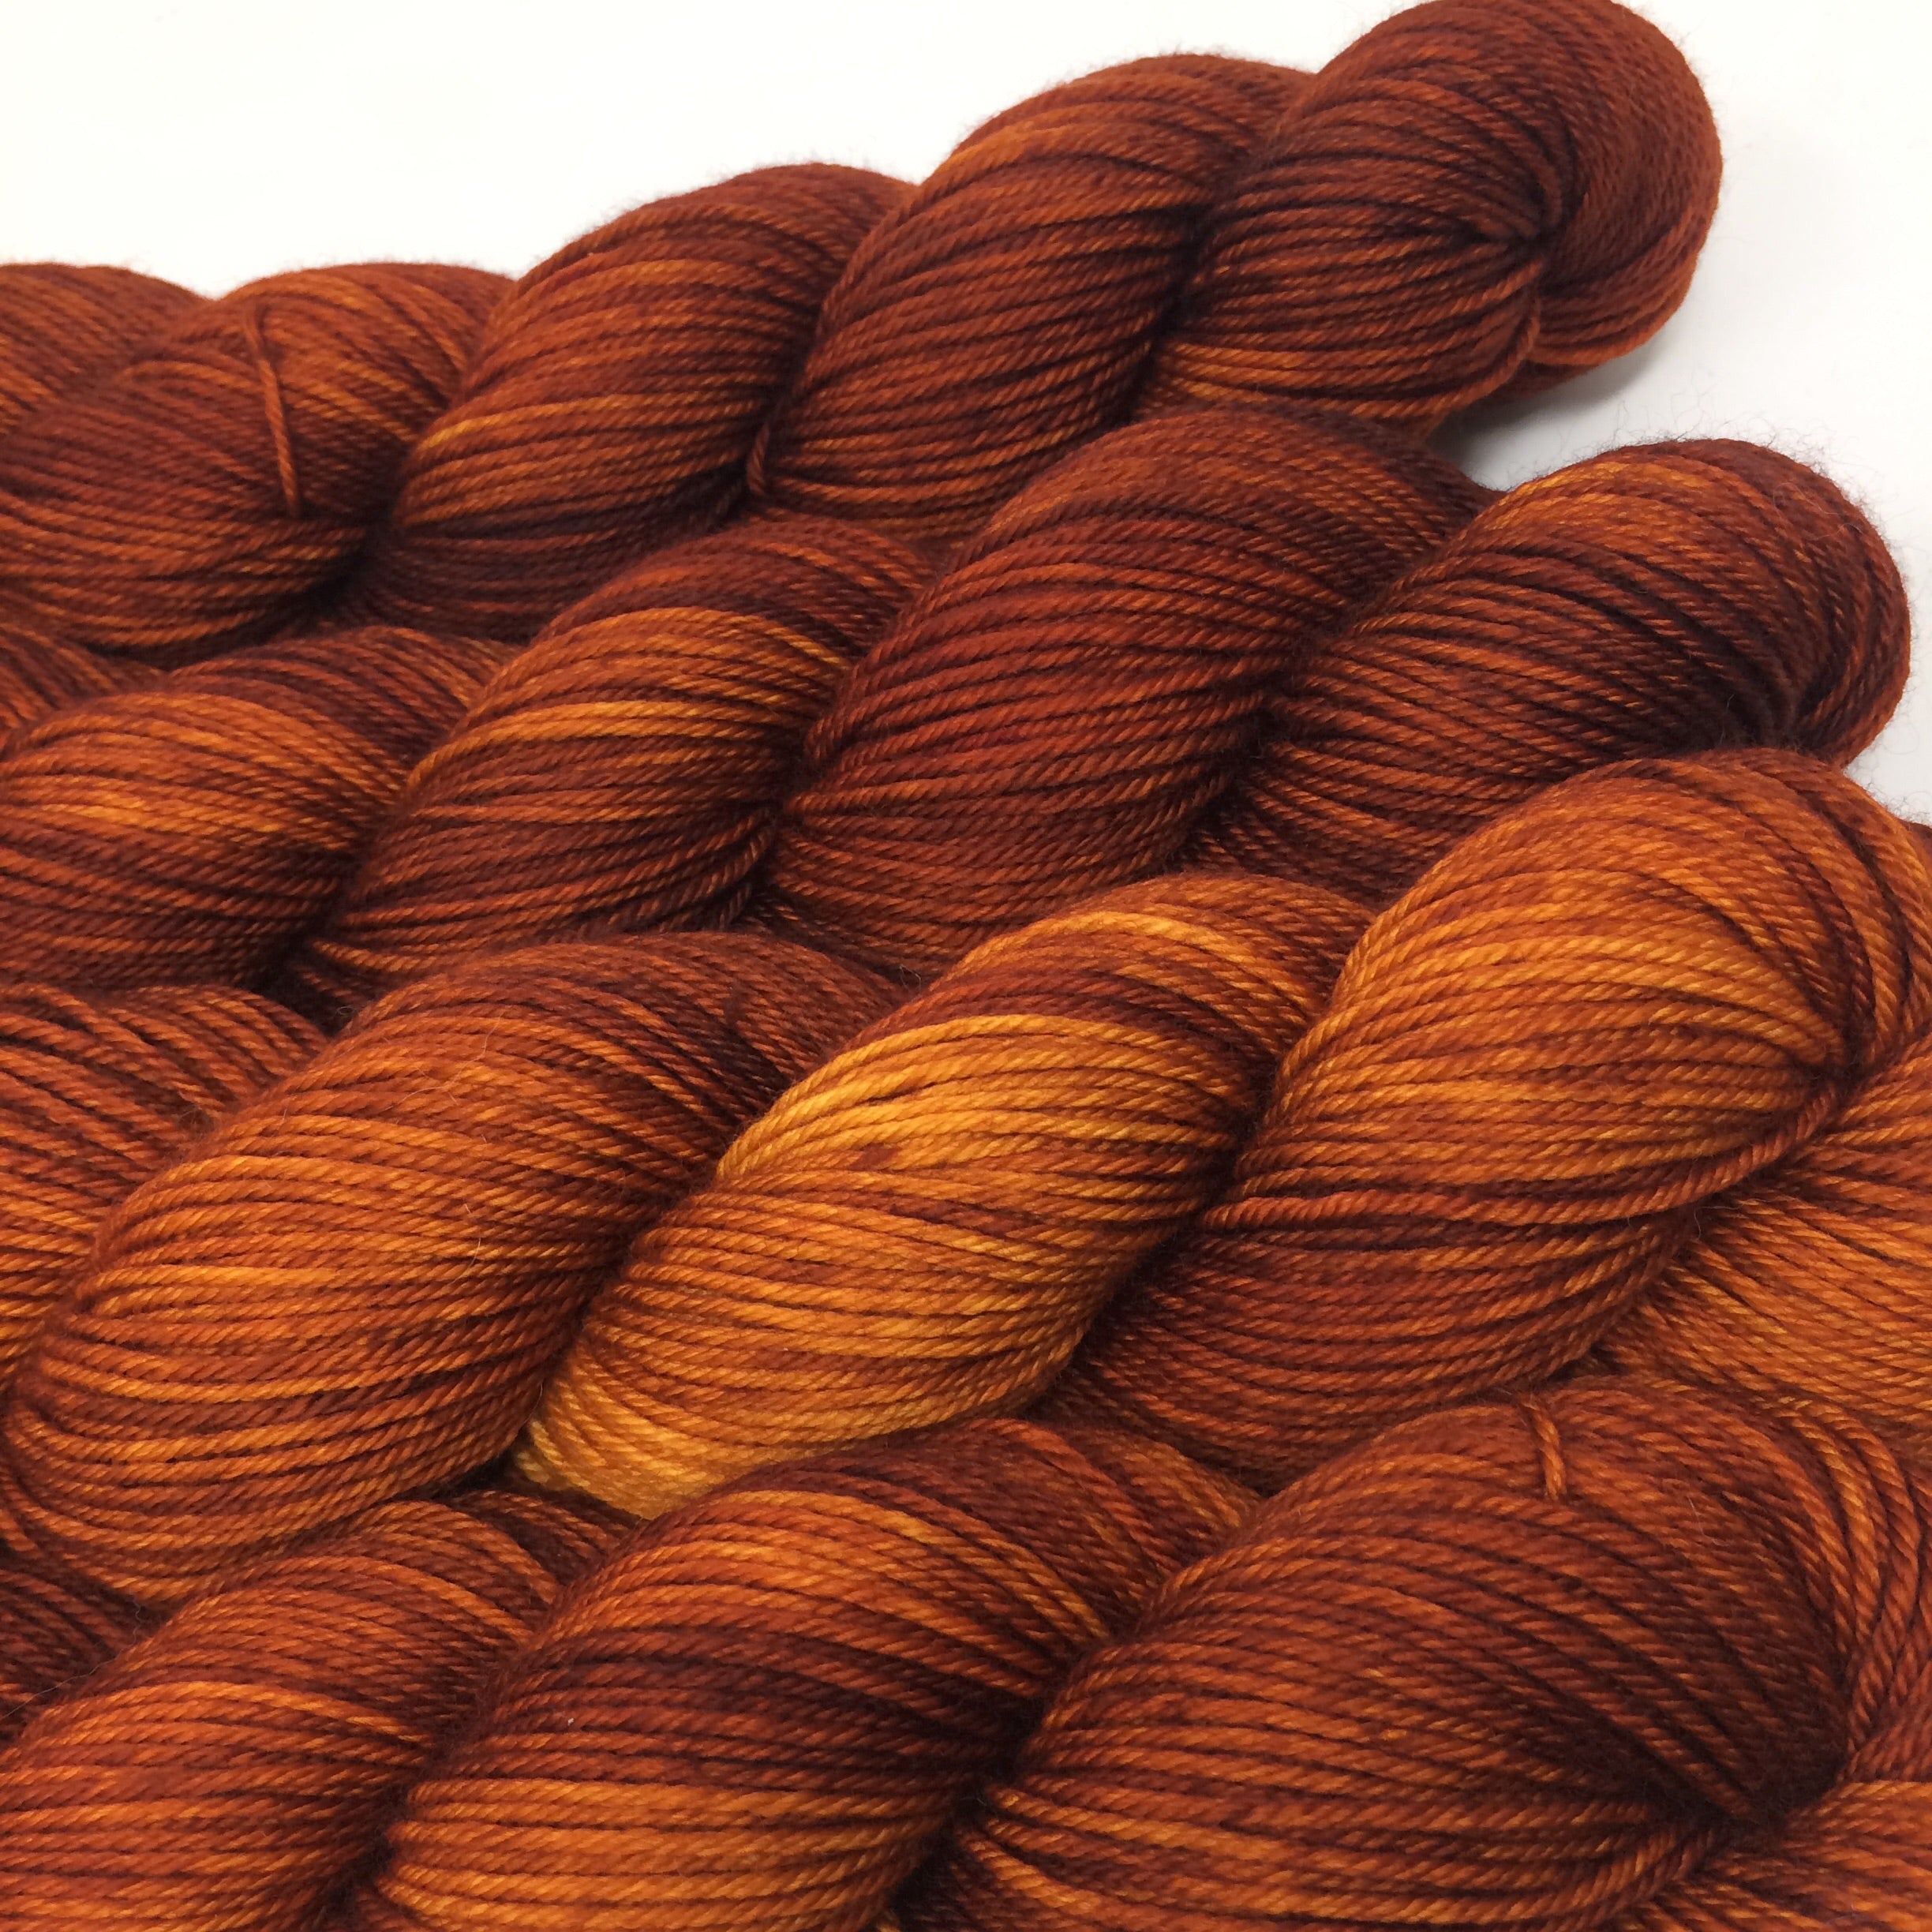 At the Hearth - Delightful DK - the perfect sweater yarn